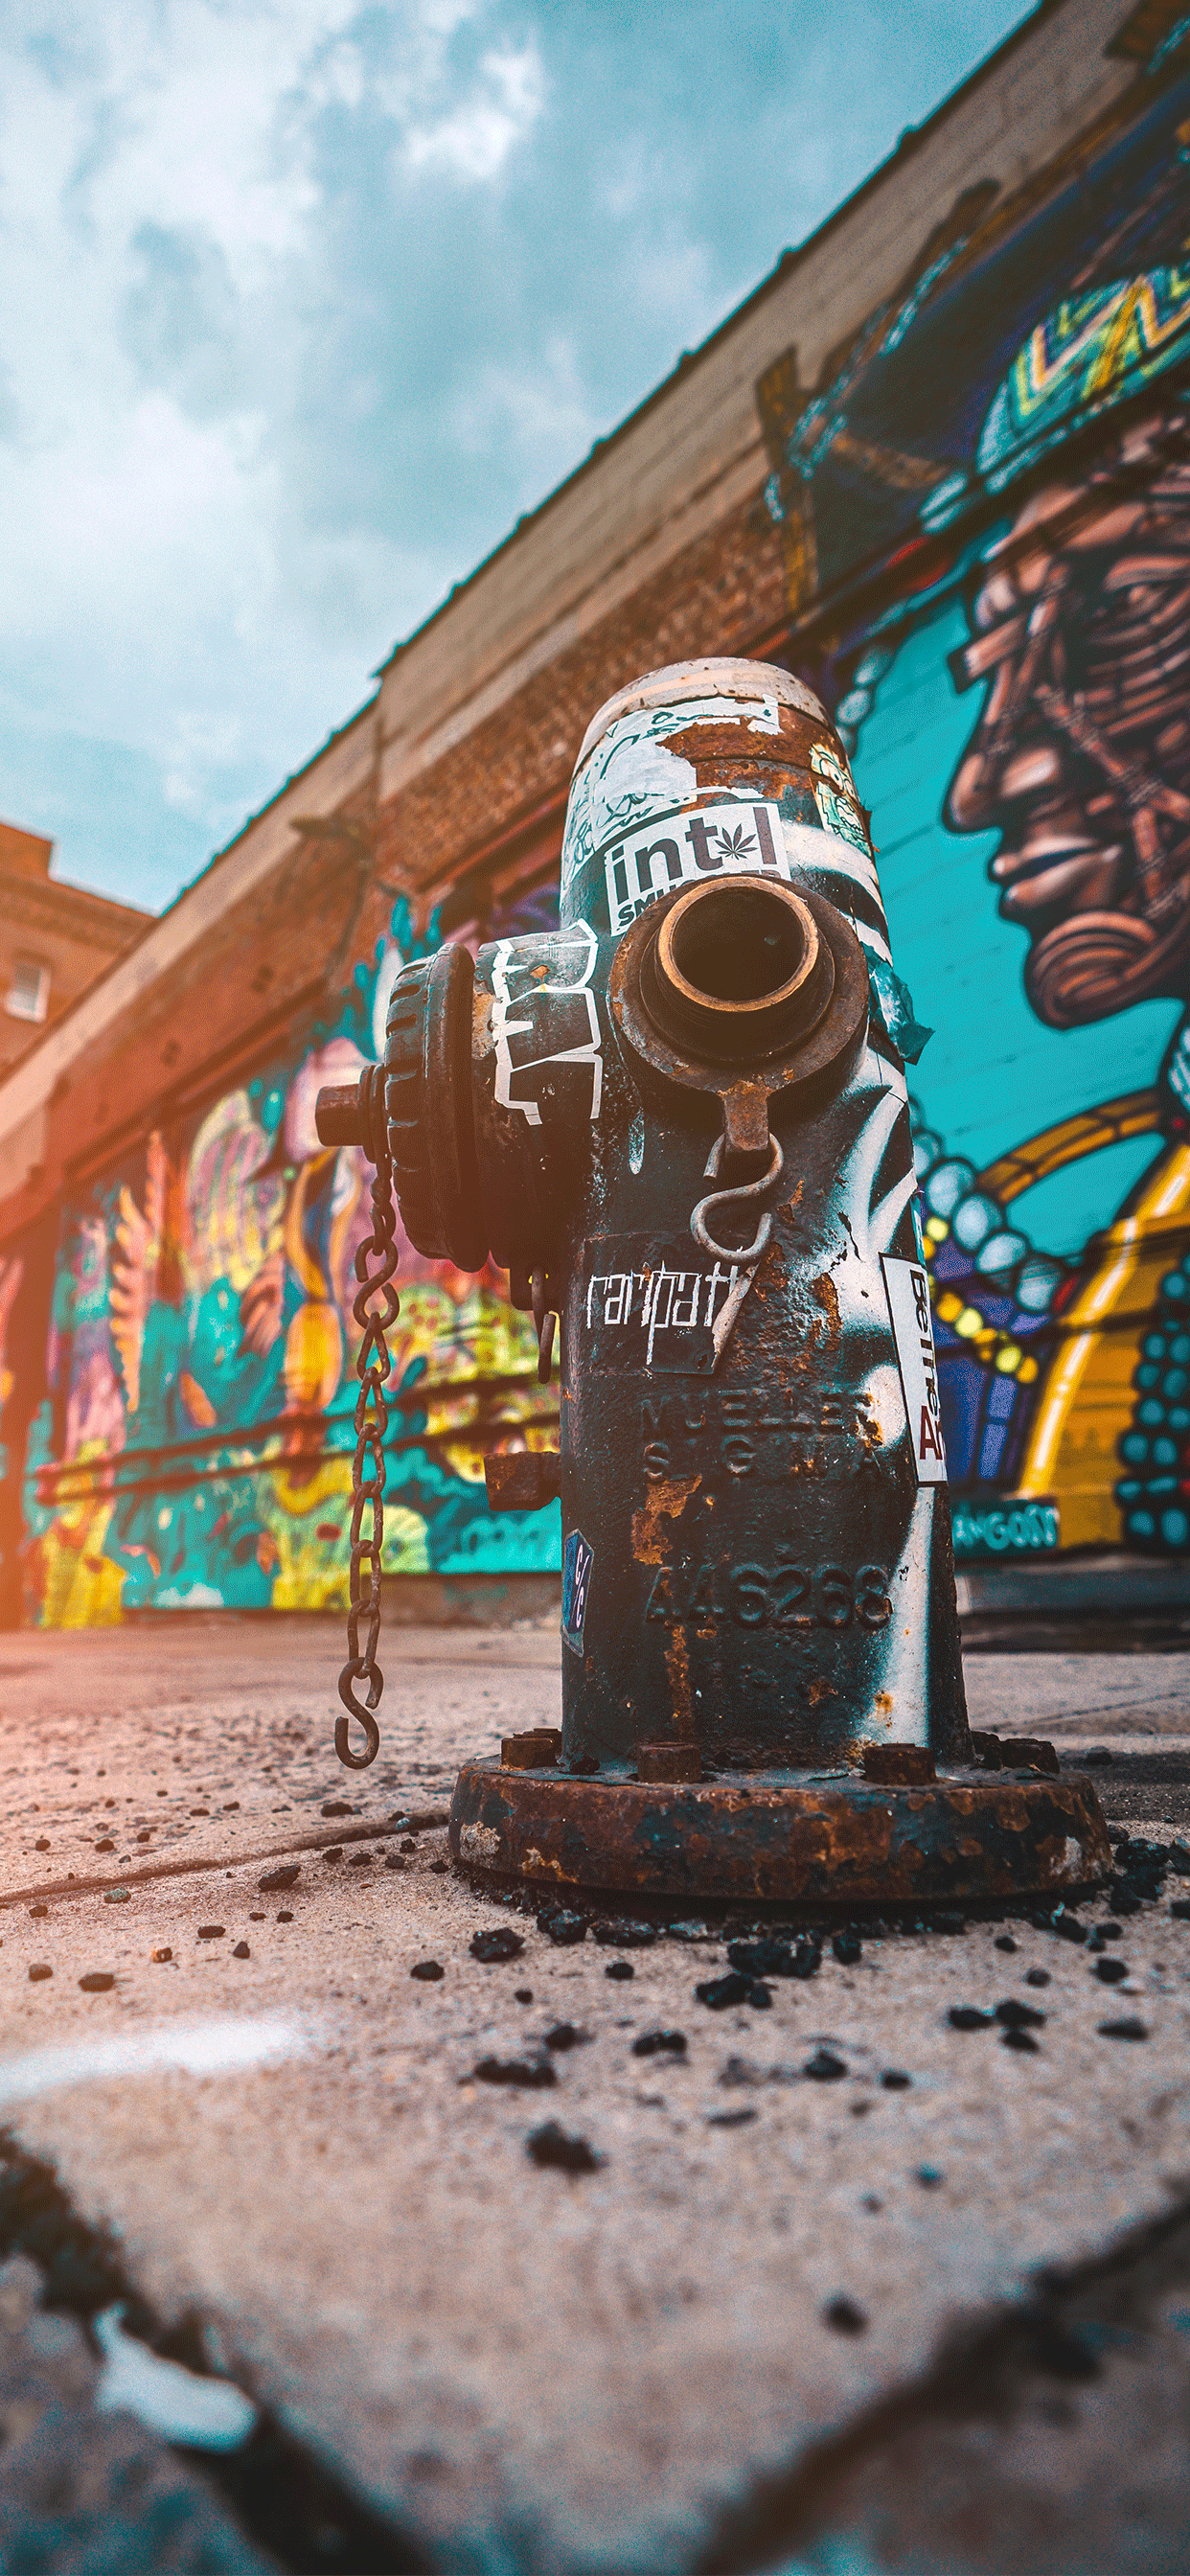 iPhone wallpaper street art hydrant Fonds d'écran iPhone du 16/11/2018